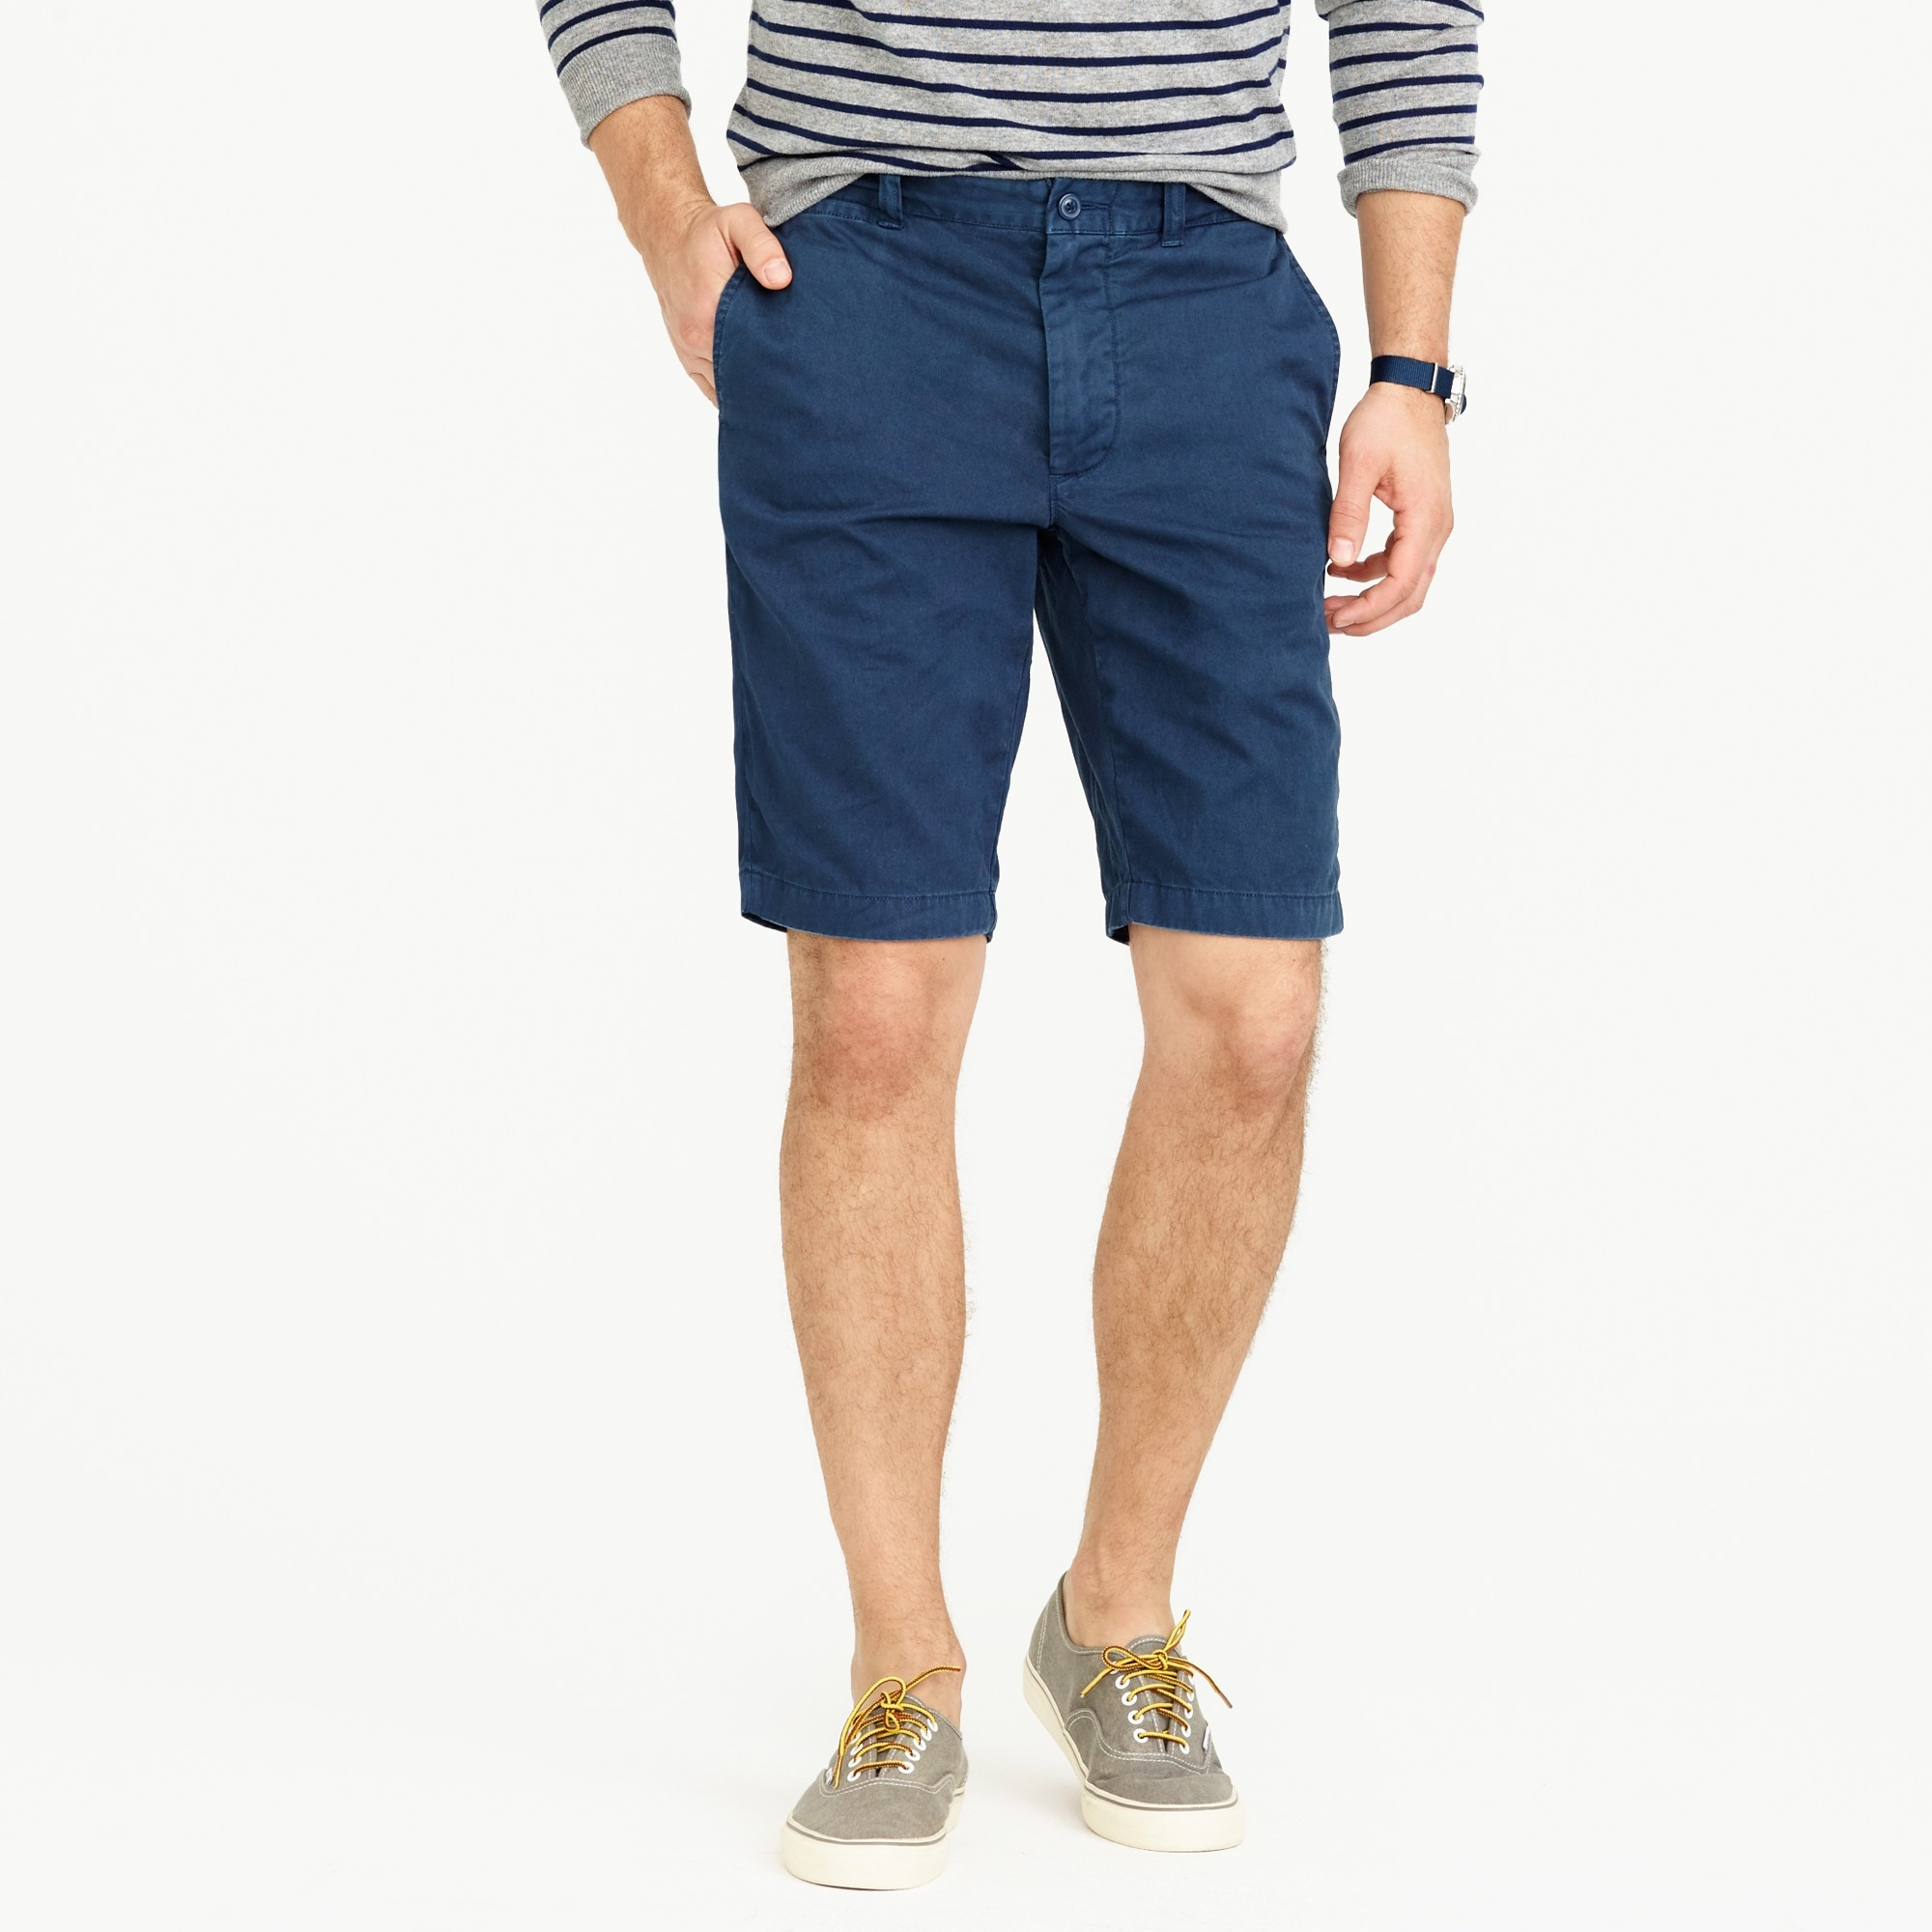 "men's 10.5 short in garment-dyed cotton"" - men's shorts"